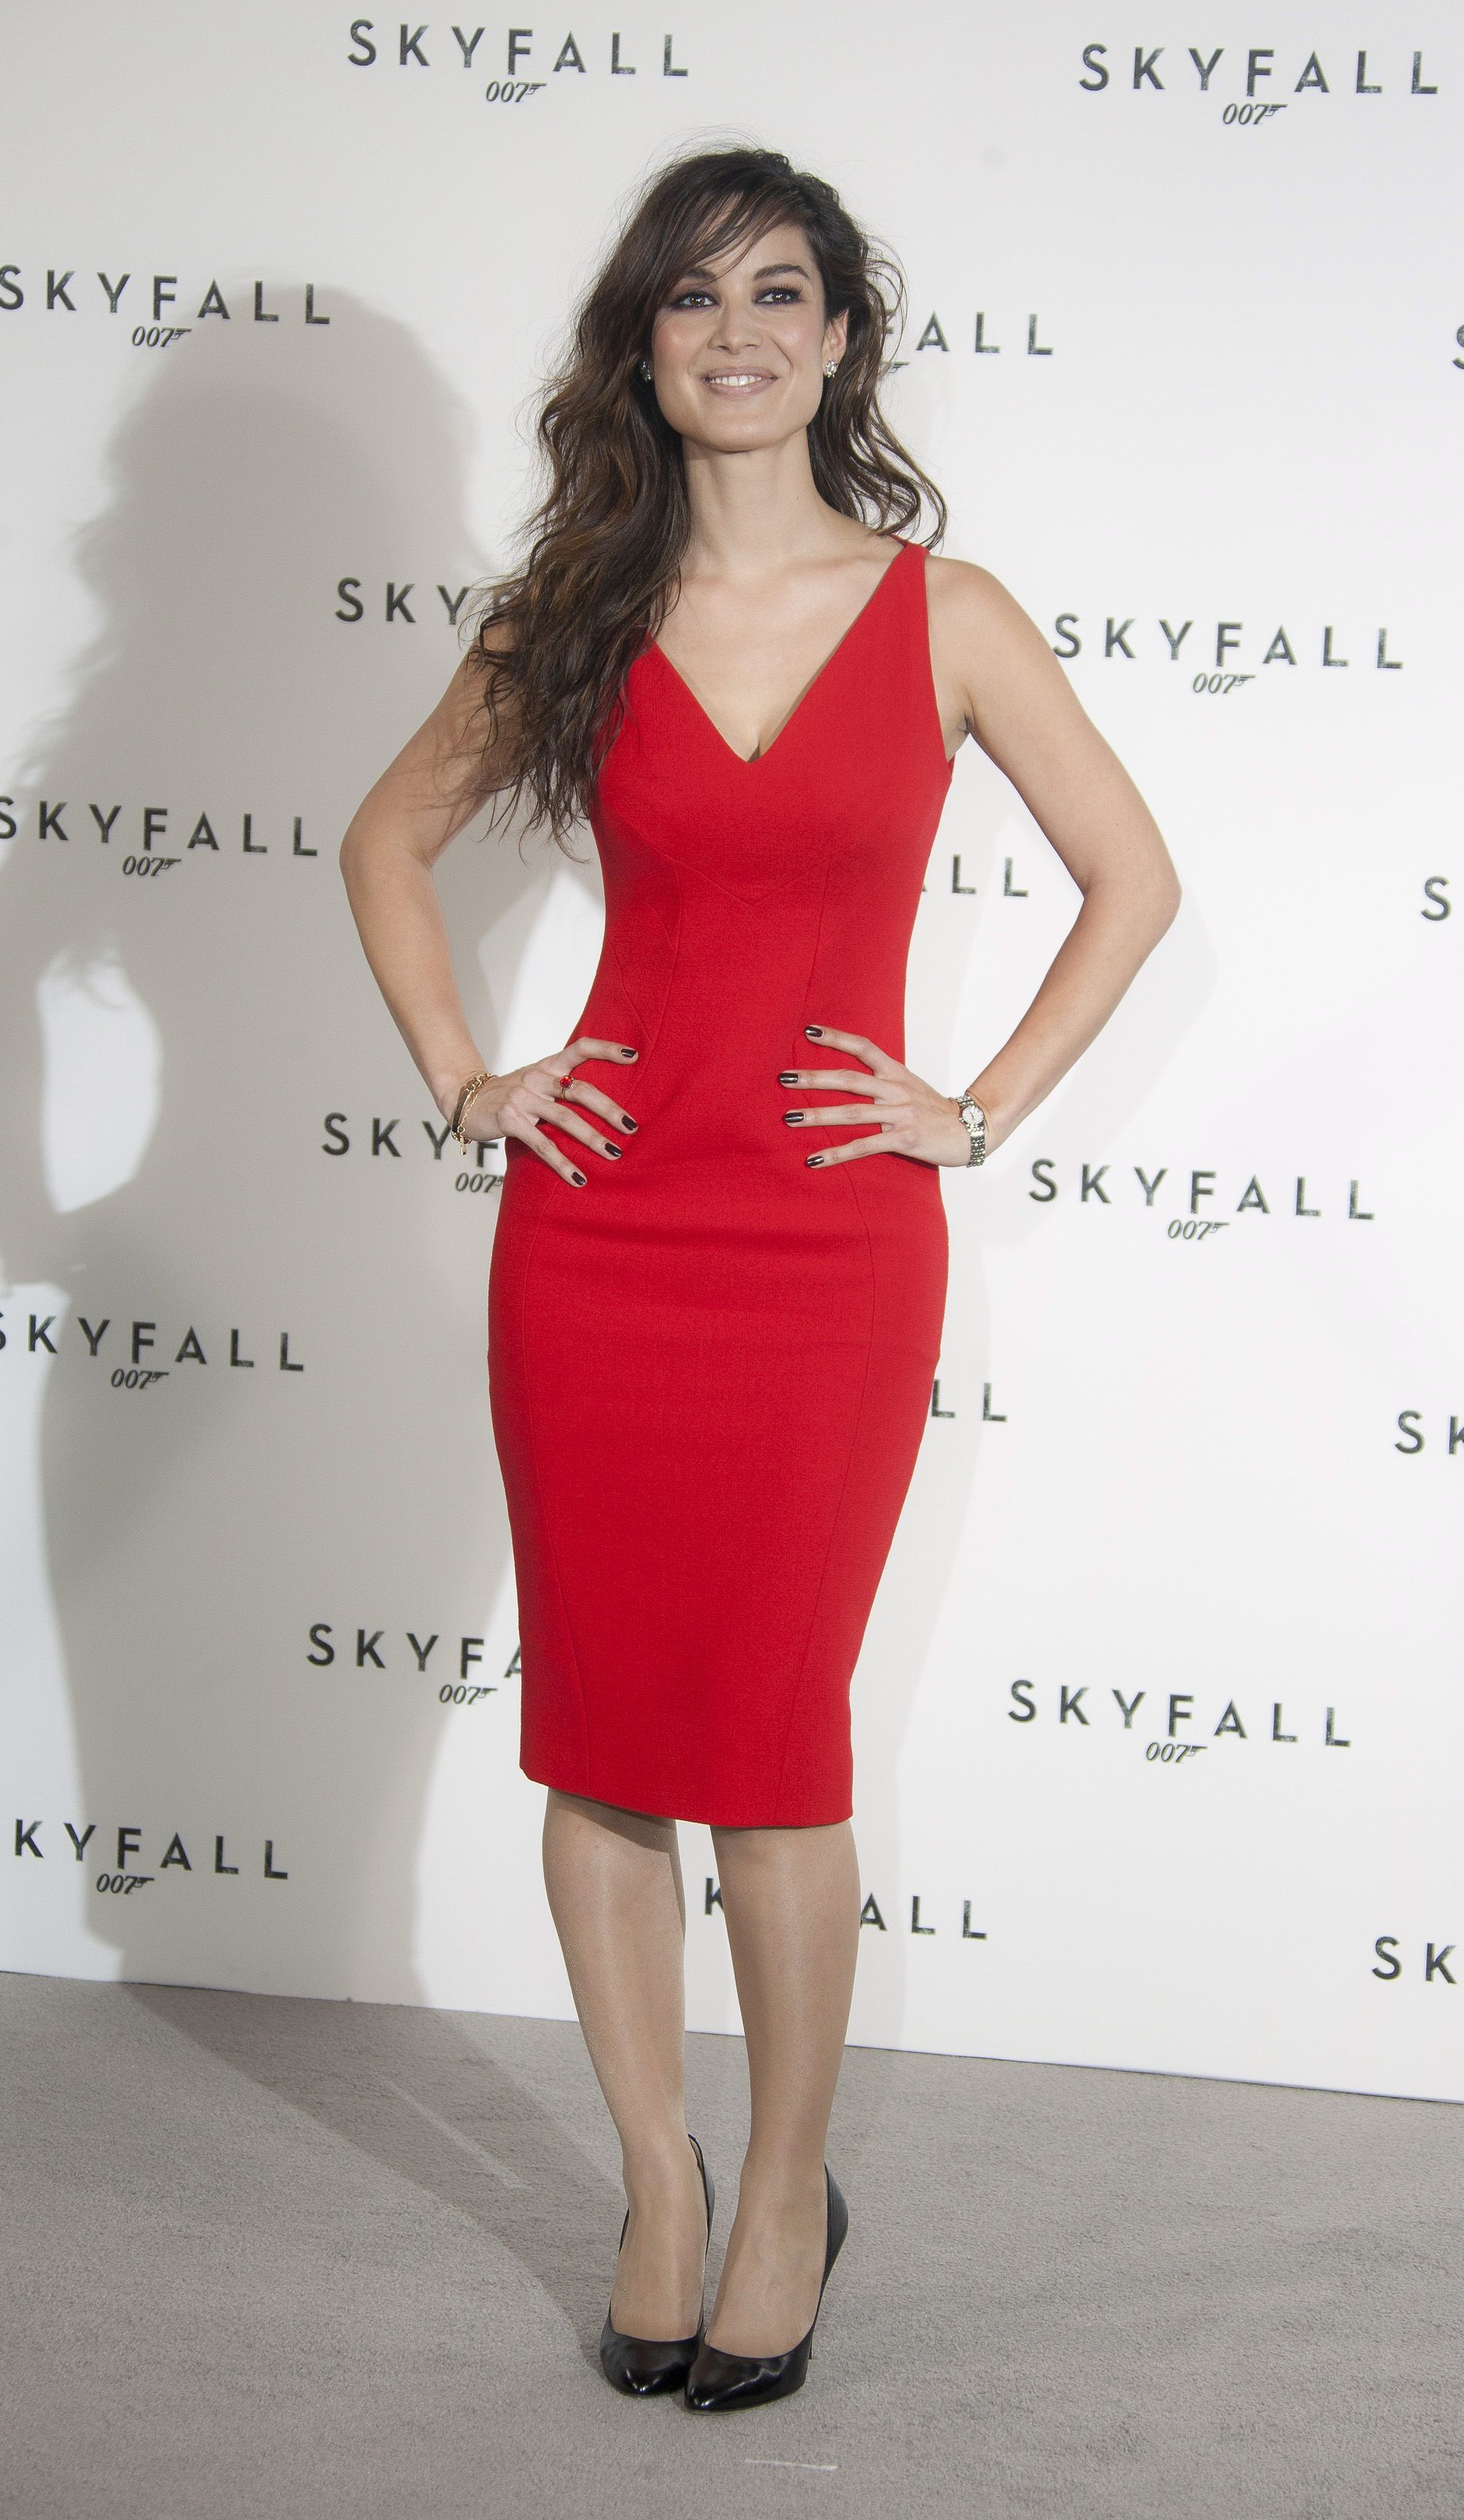 Tapijt Jurk Cecilia Berenice Marlohe Red Dress Want Amazing Red Carpet